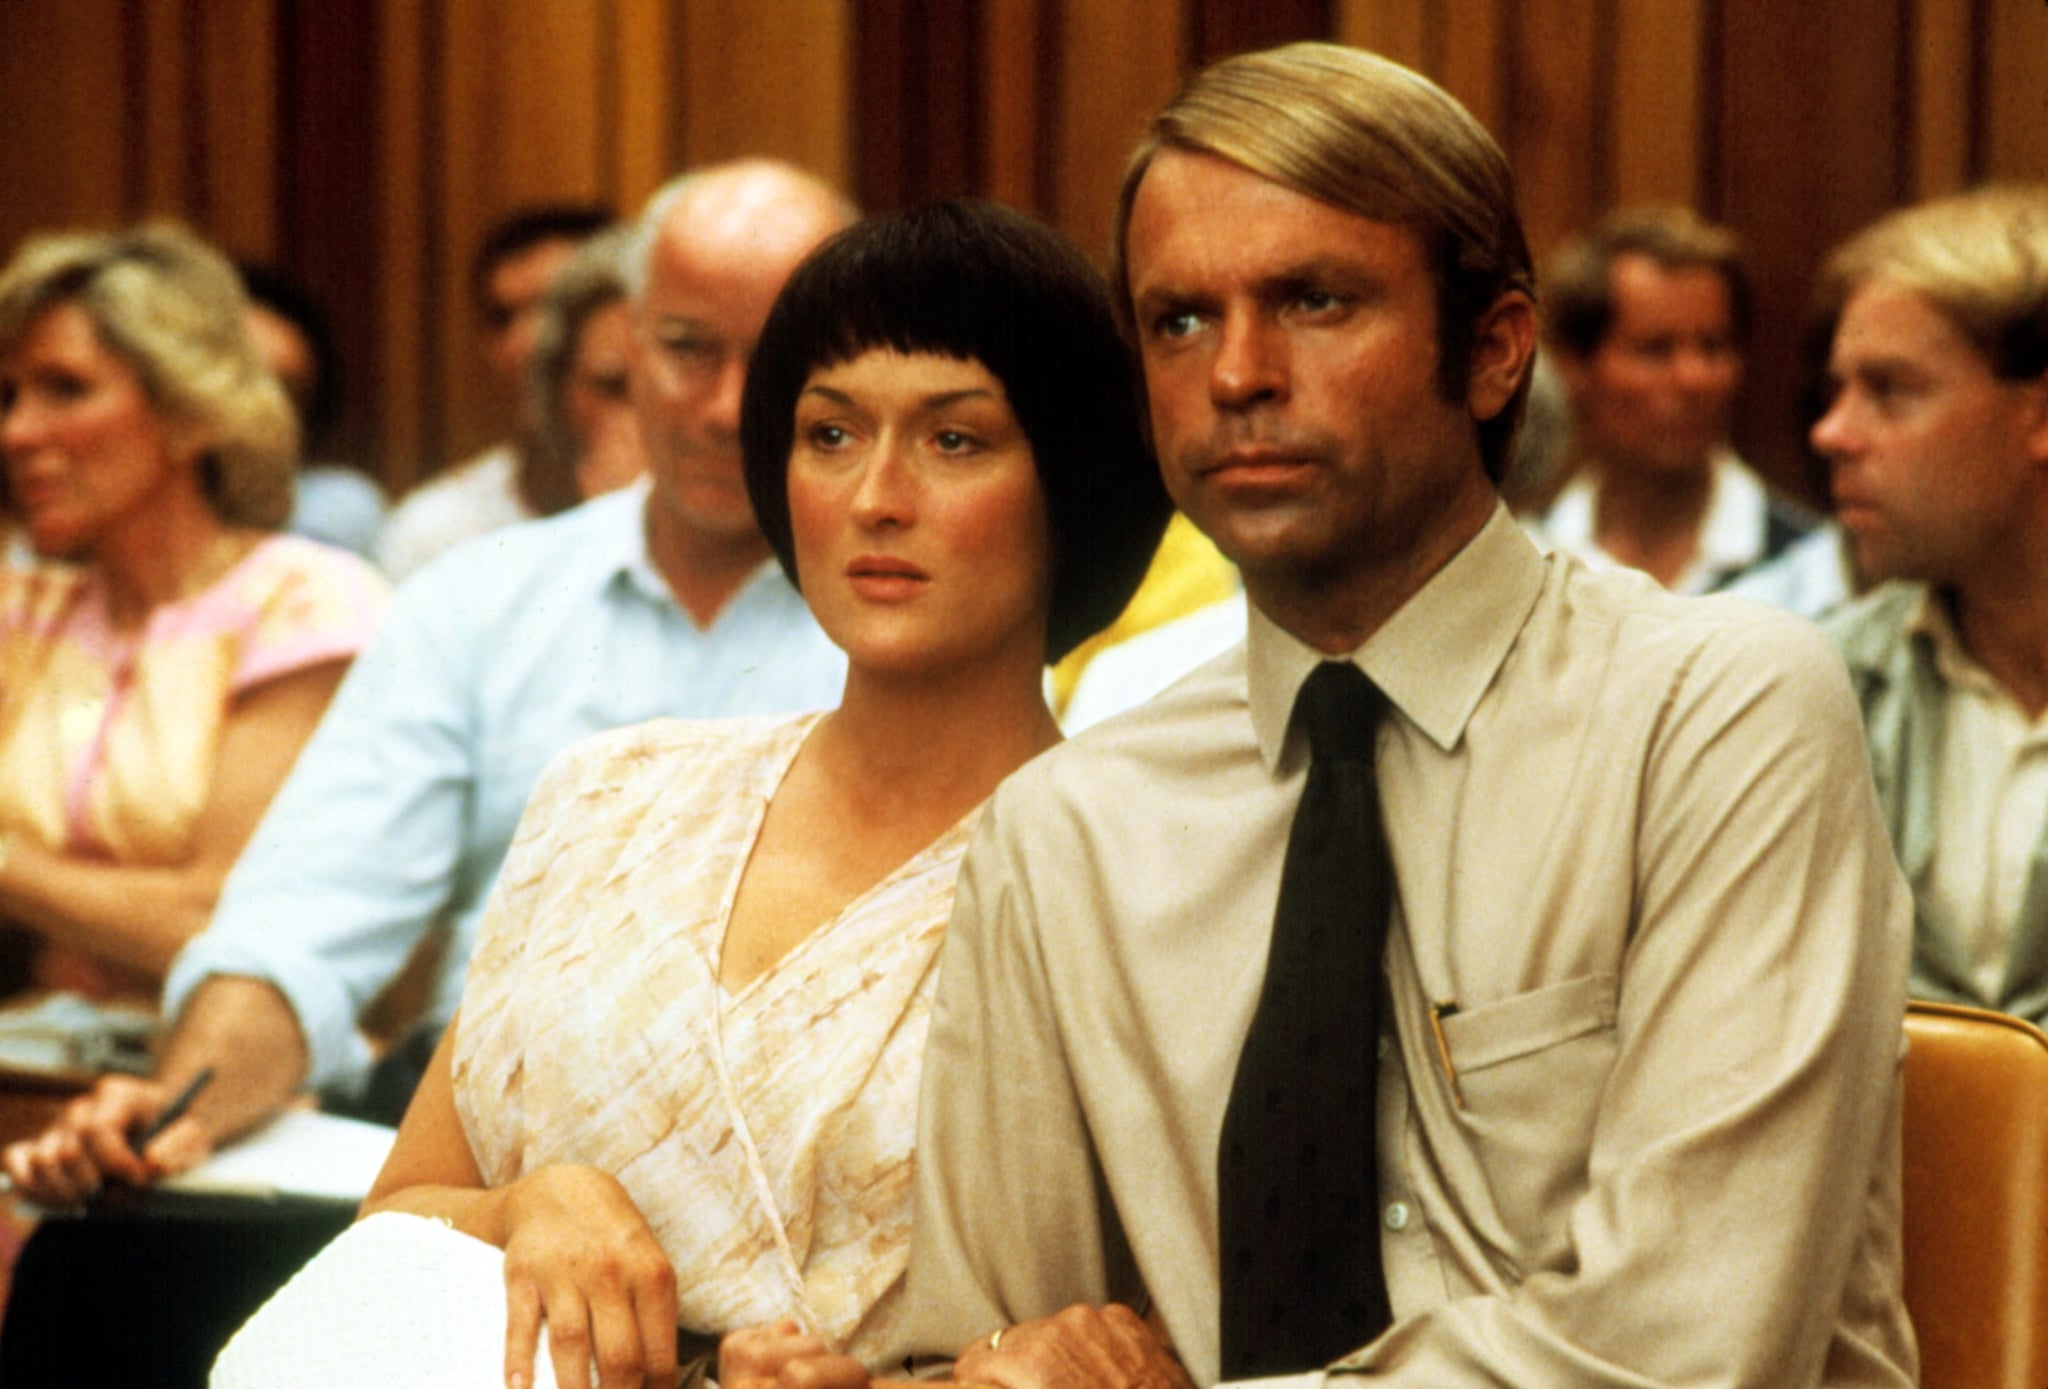 A Cry in the Dark (1988) Biography, Drama